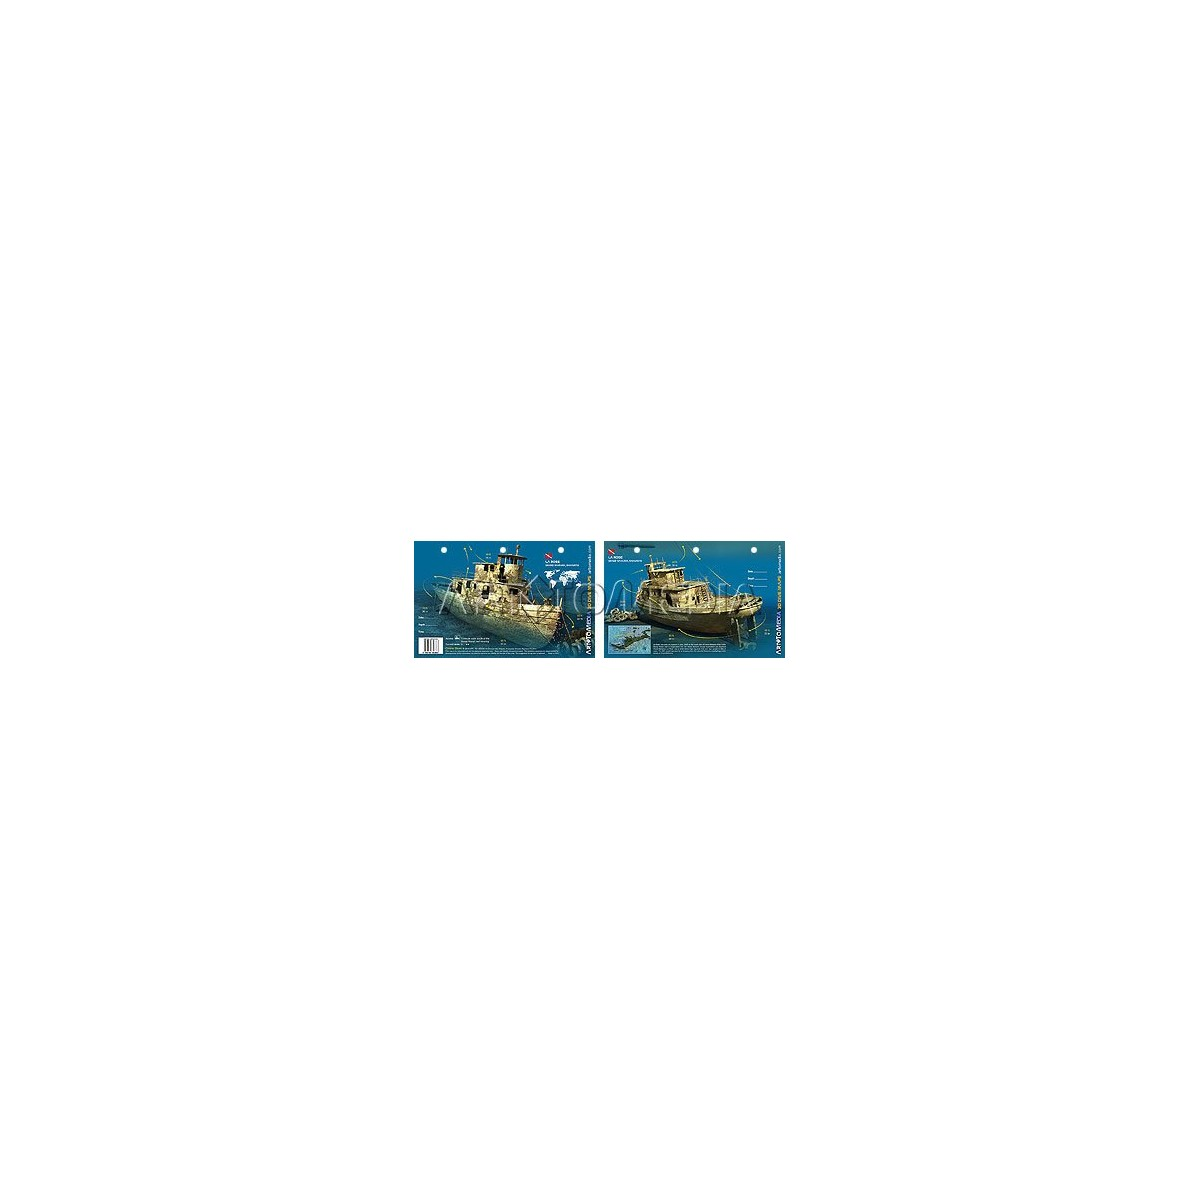 La Rose in the Bahamas (8.5 x 5.5 Inches) (21.6 x 15cm) - New Art to Media Underwater Waterproof 3D Dive Site Map